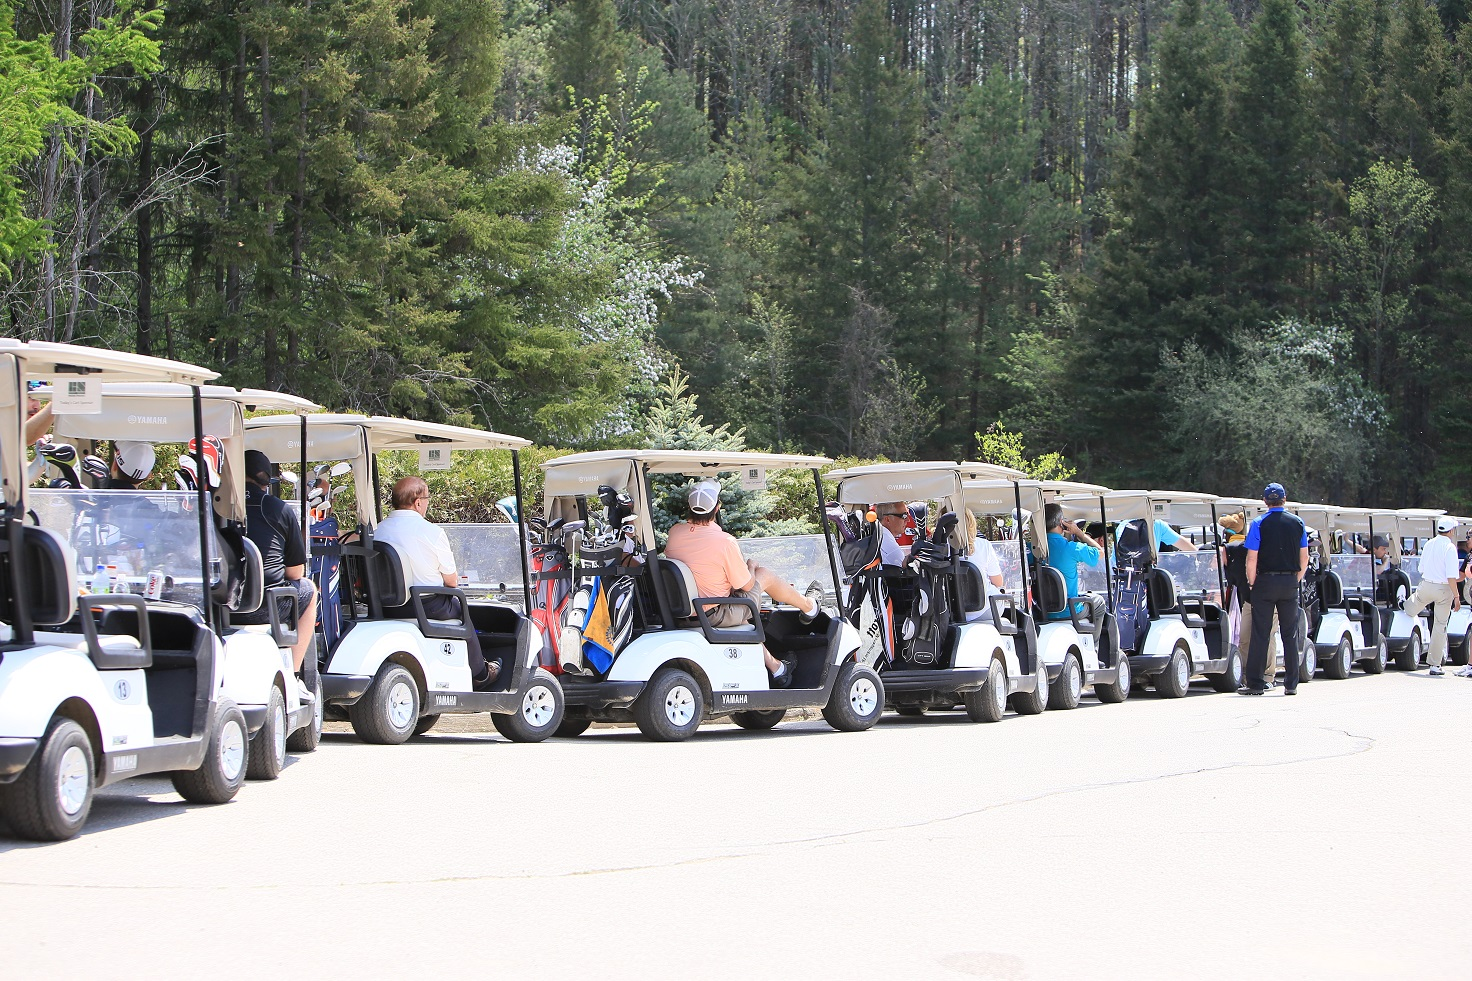 2019 Bolton Rotary Early Bird Golf Classic gallery image #10